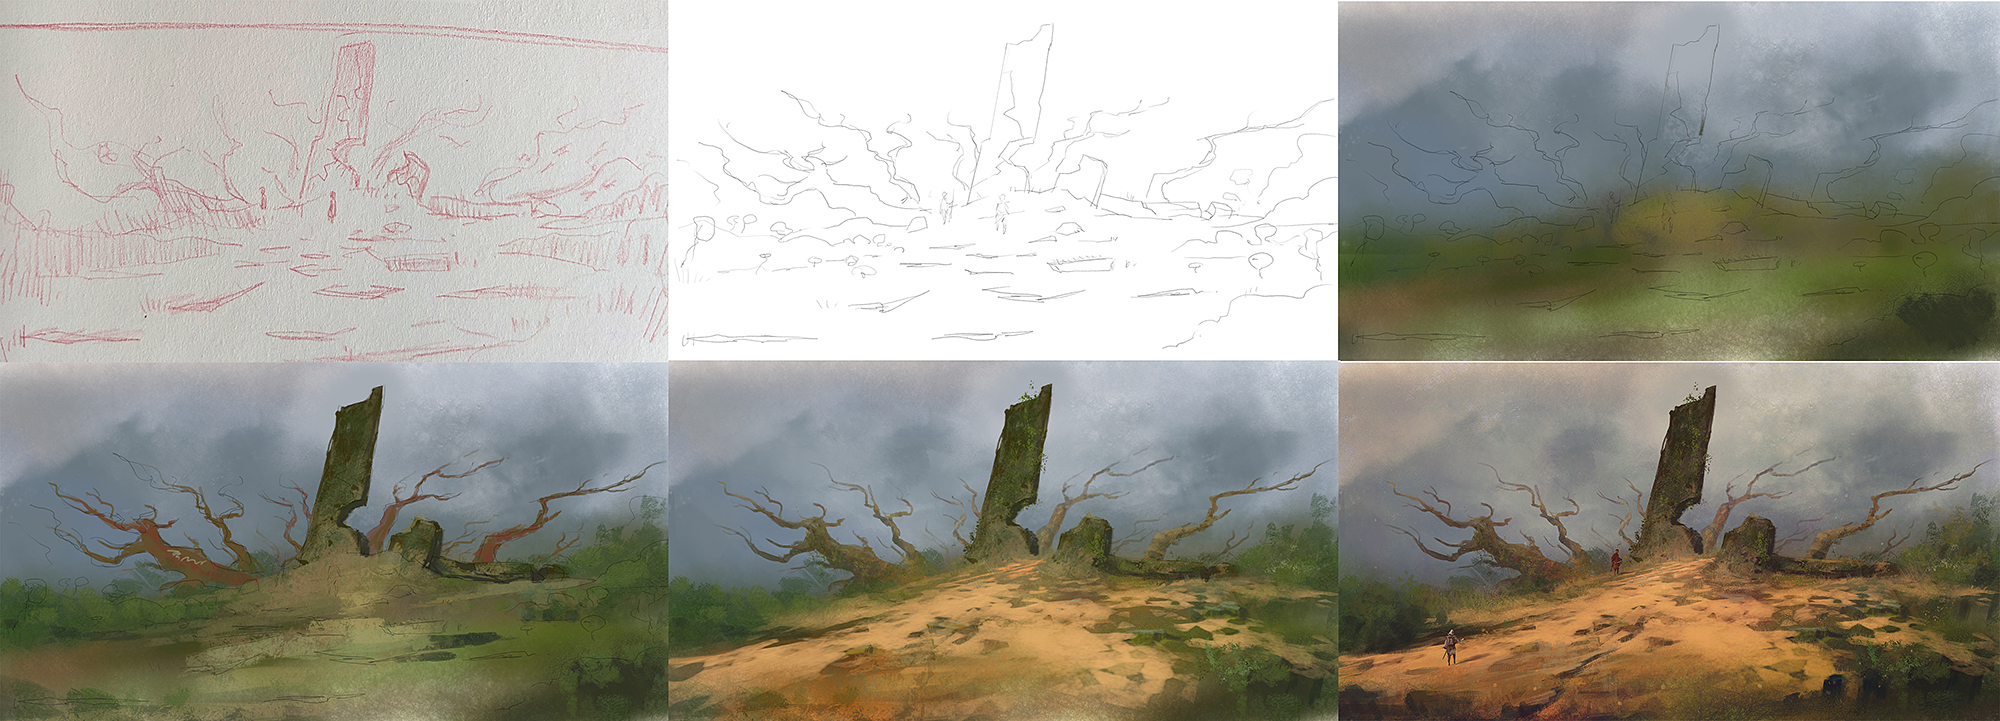 lands_makingof.jpg